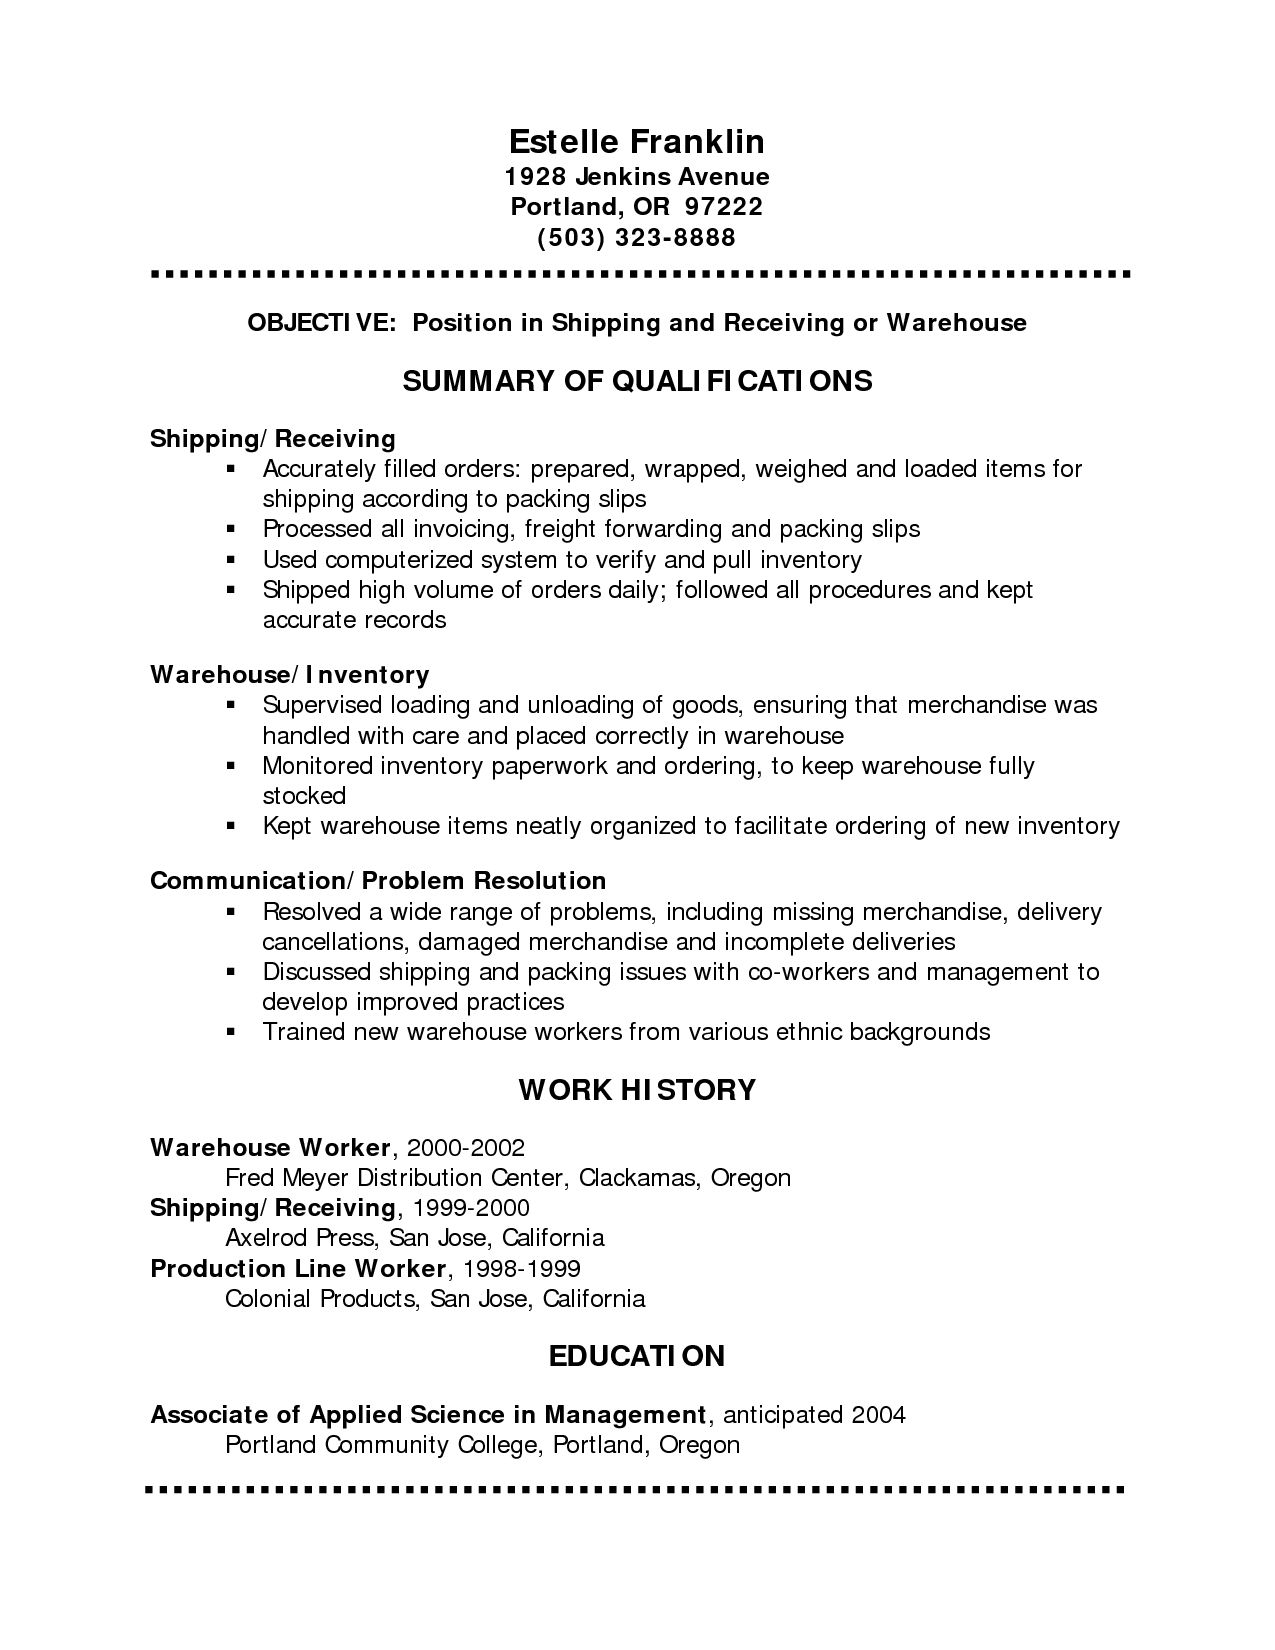 Template Of Resume Your Guide The Best Free Resume Templates Good Samples Examples